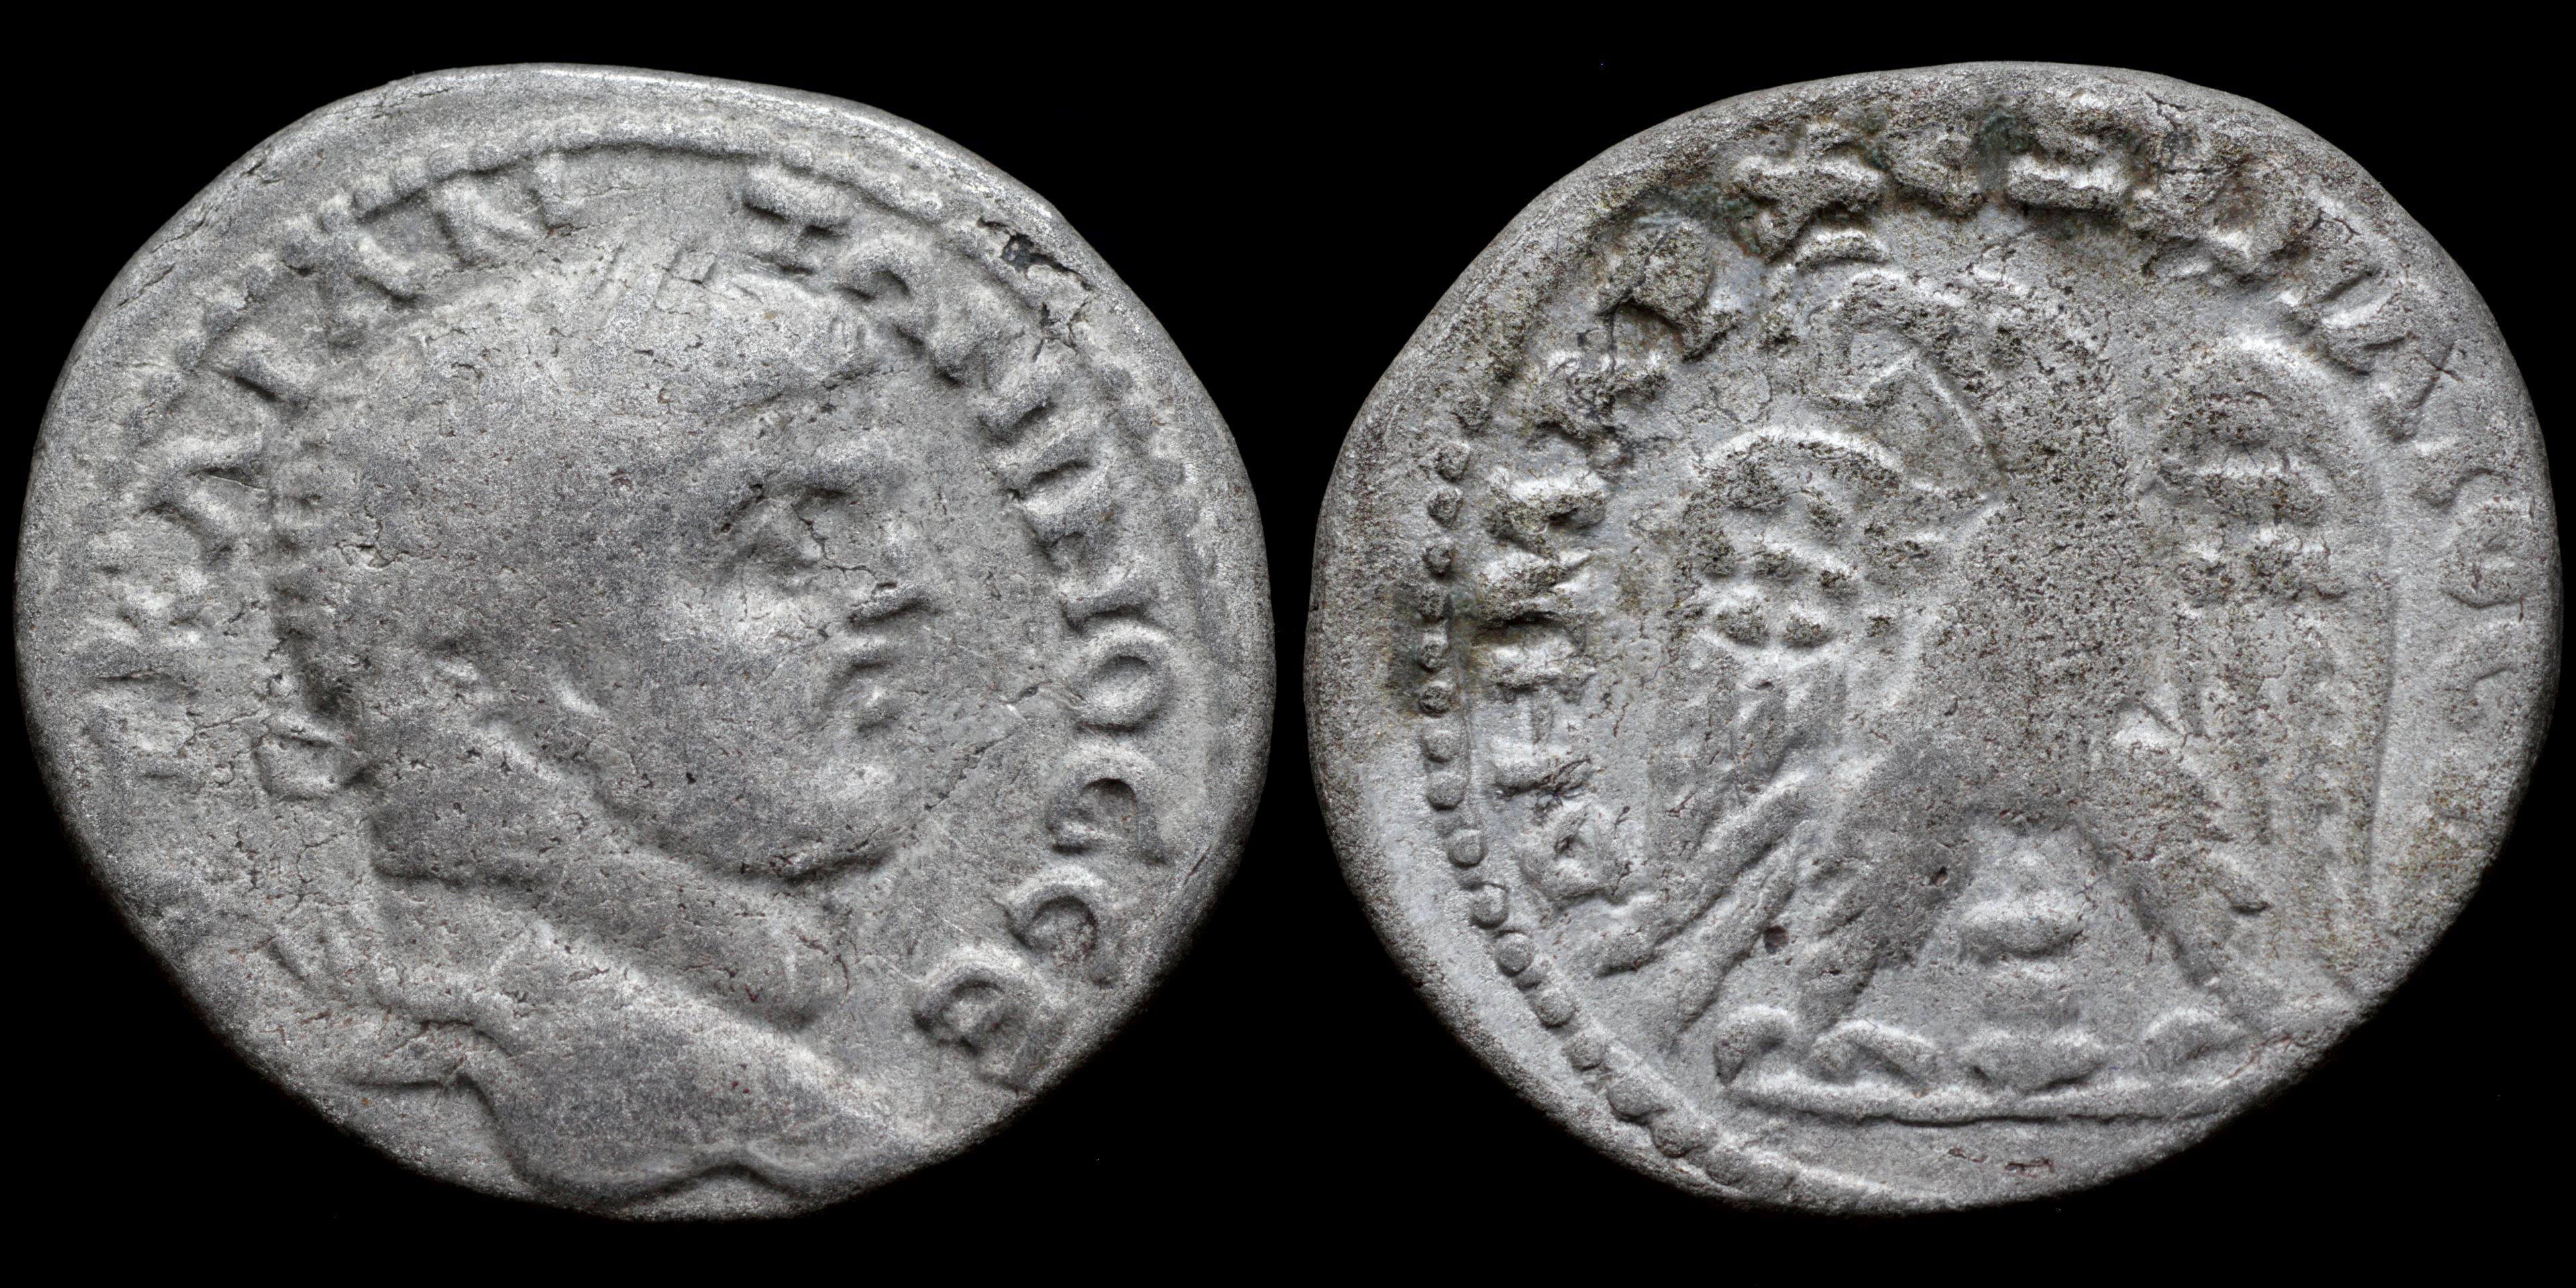 /Files/Images/Coinsite/CoinDB/Caracalla_Neapolis.jpg